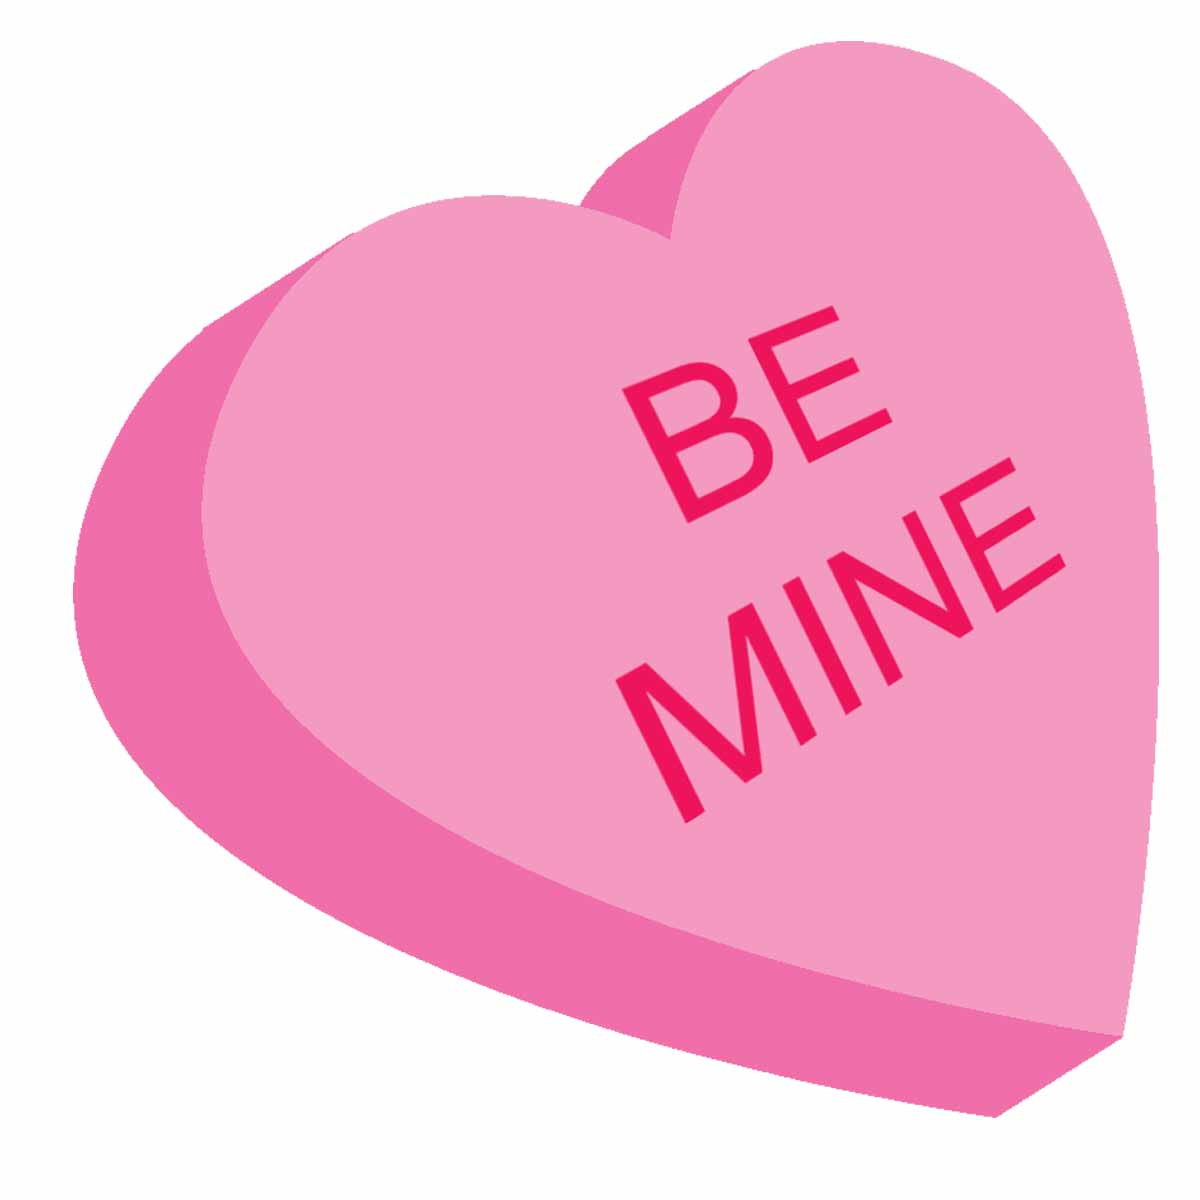 Valentines Day Hearts Pictures | Free download best Valentines Day ...